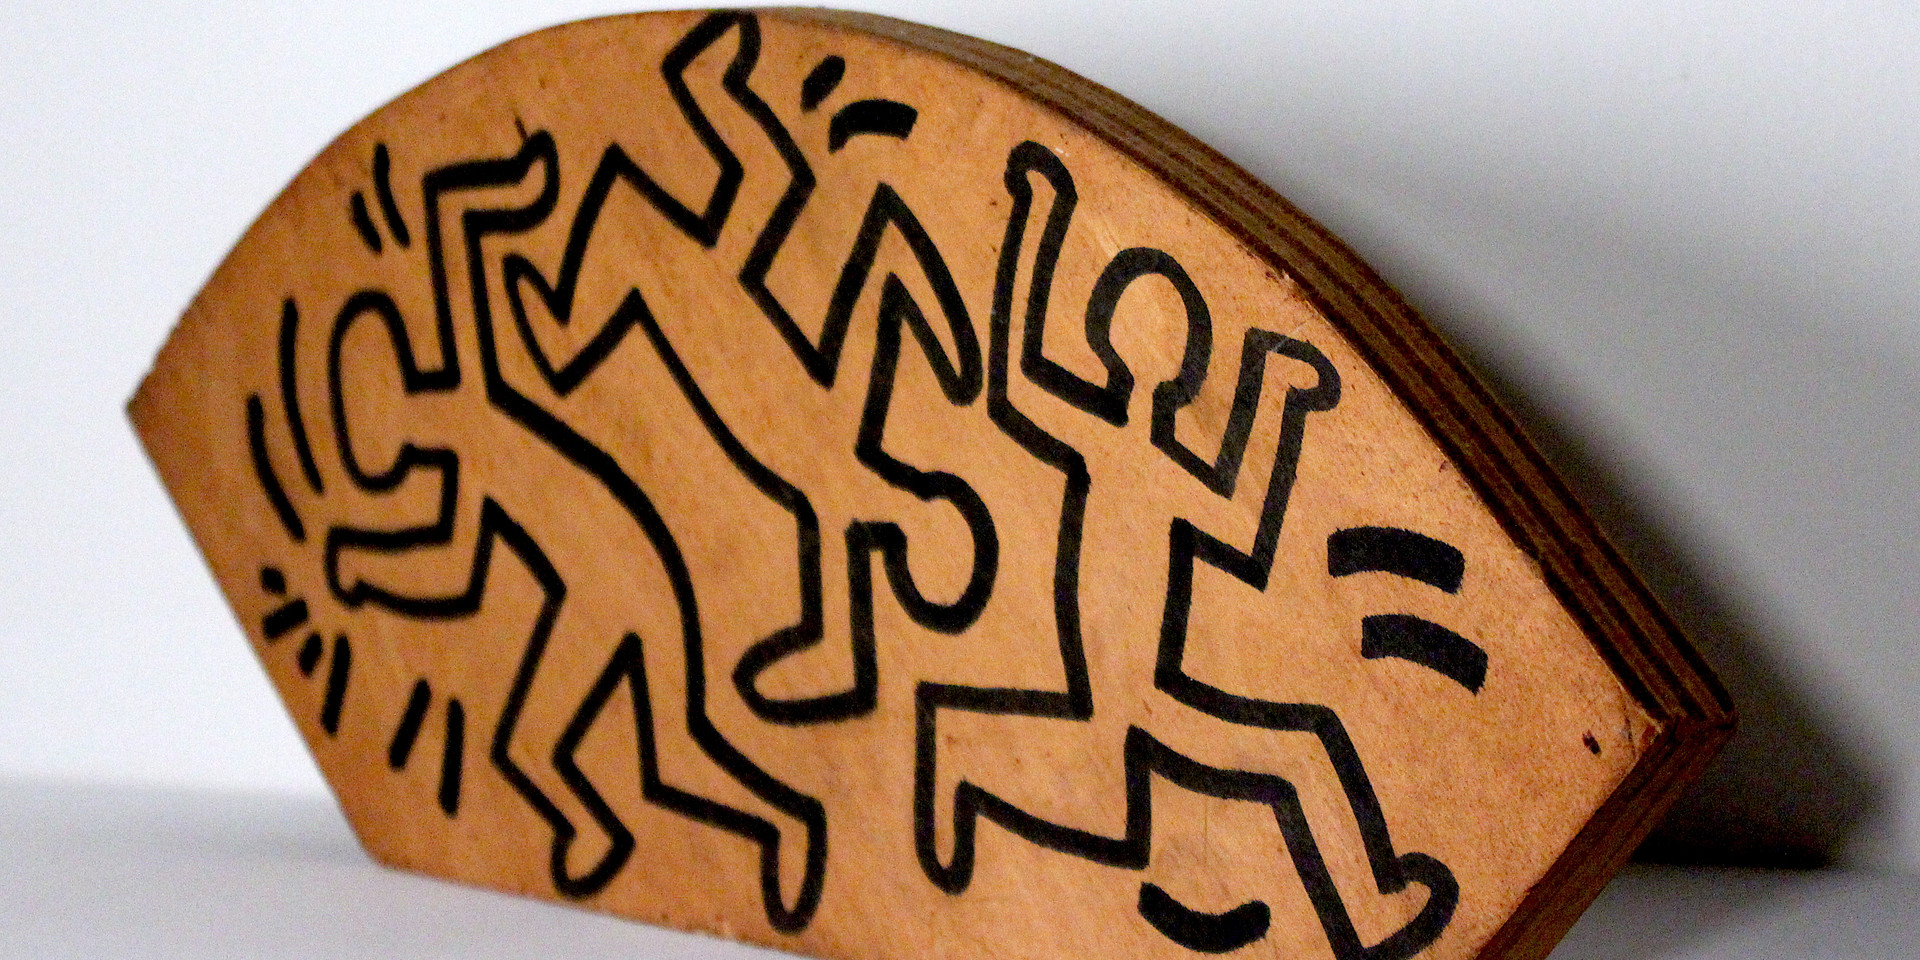 """Keith Haring, """"Untitled (Wood Drawing)"""", 1982, Marker on plywood, 6"""" x 15"""" x 0.75"""""""